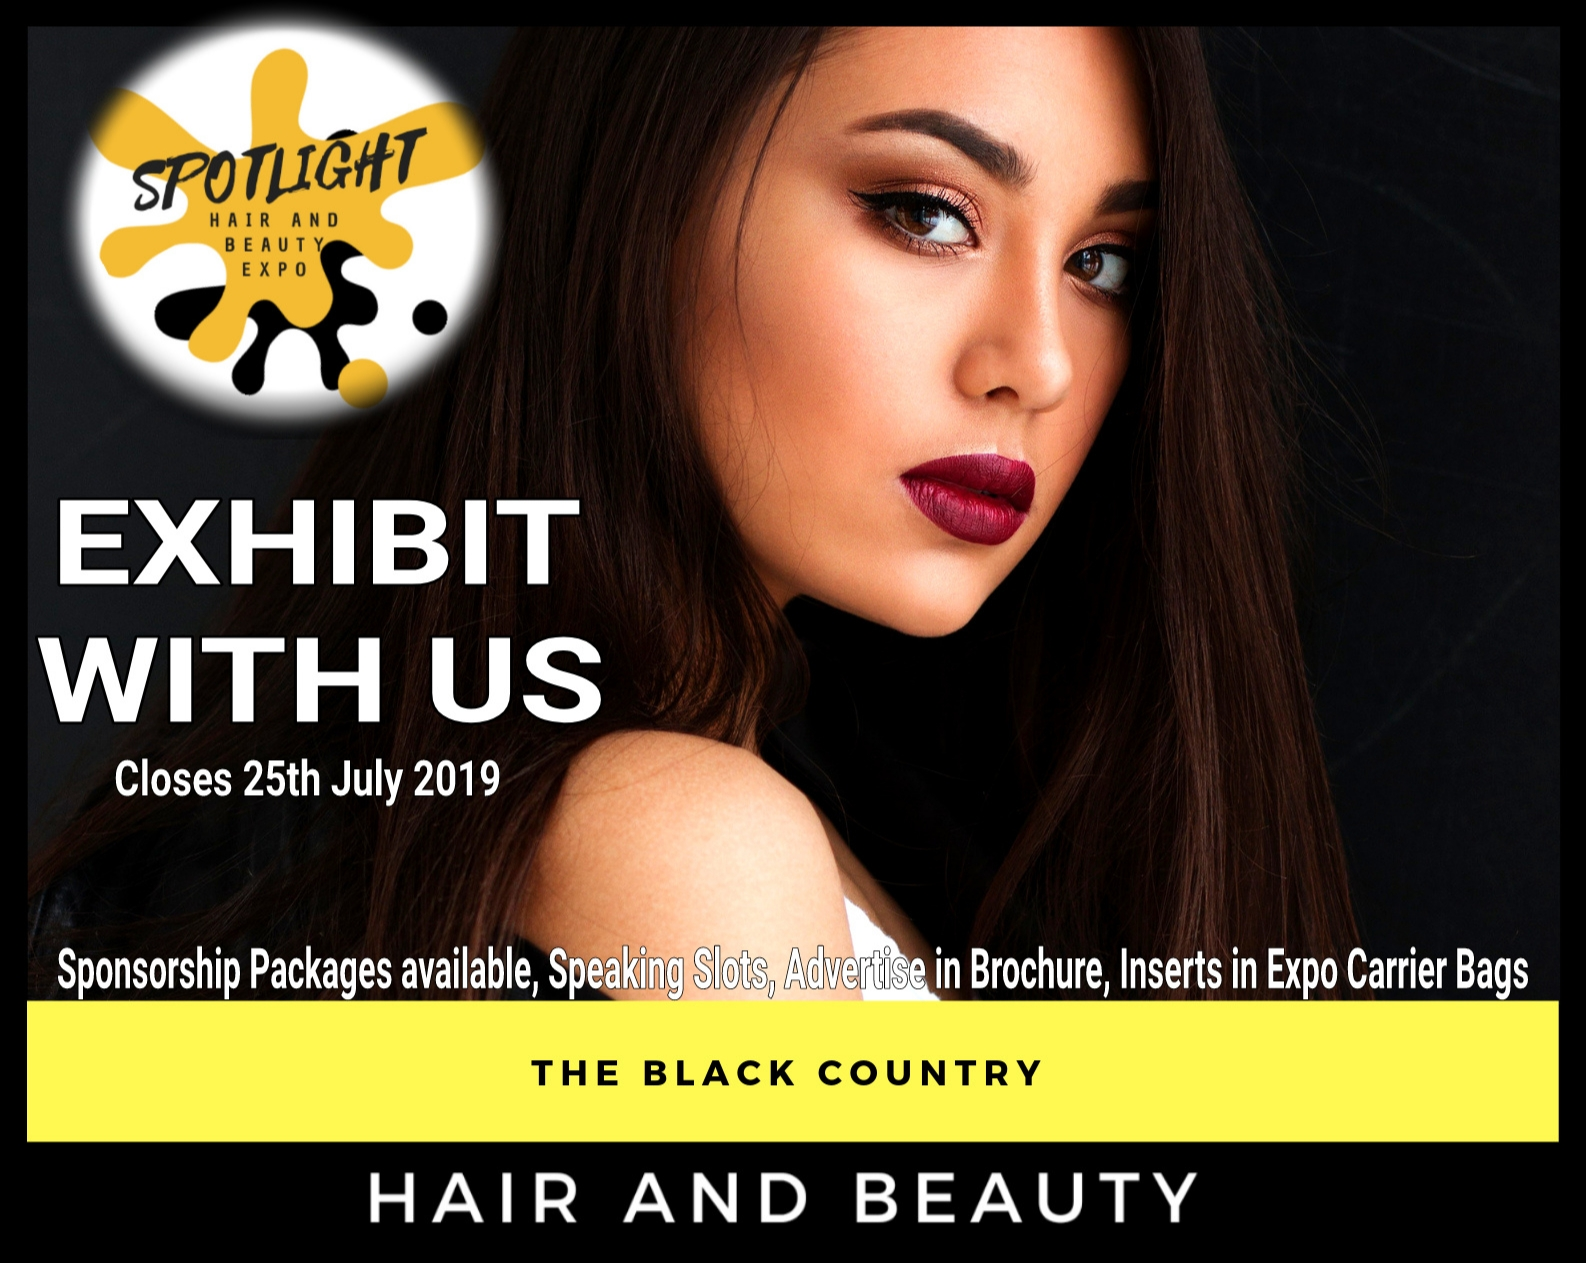 REGISTER TO EXHIBIT AT HAIR SHOW